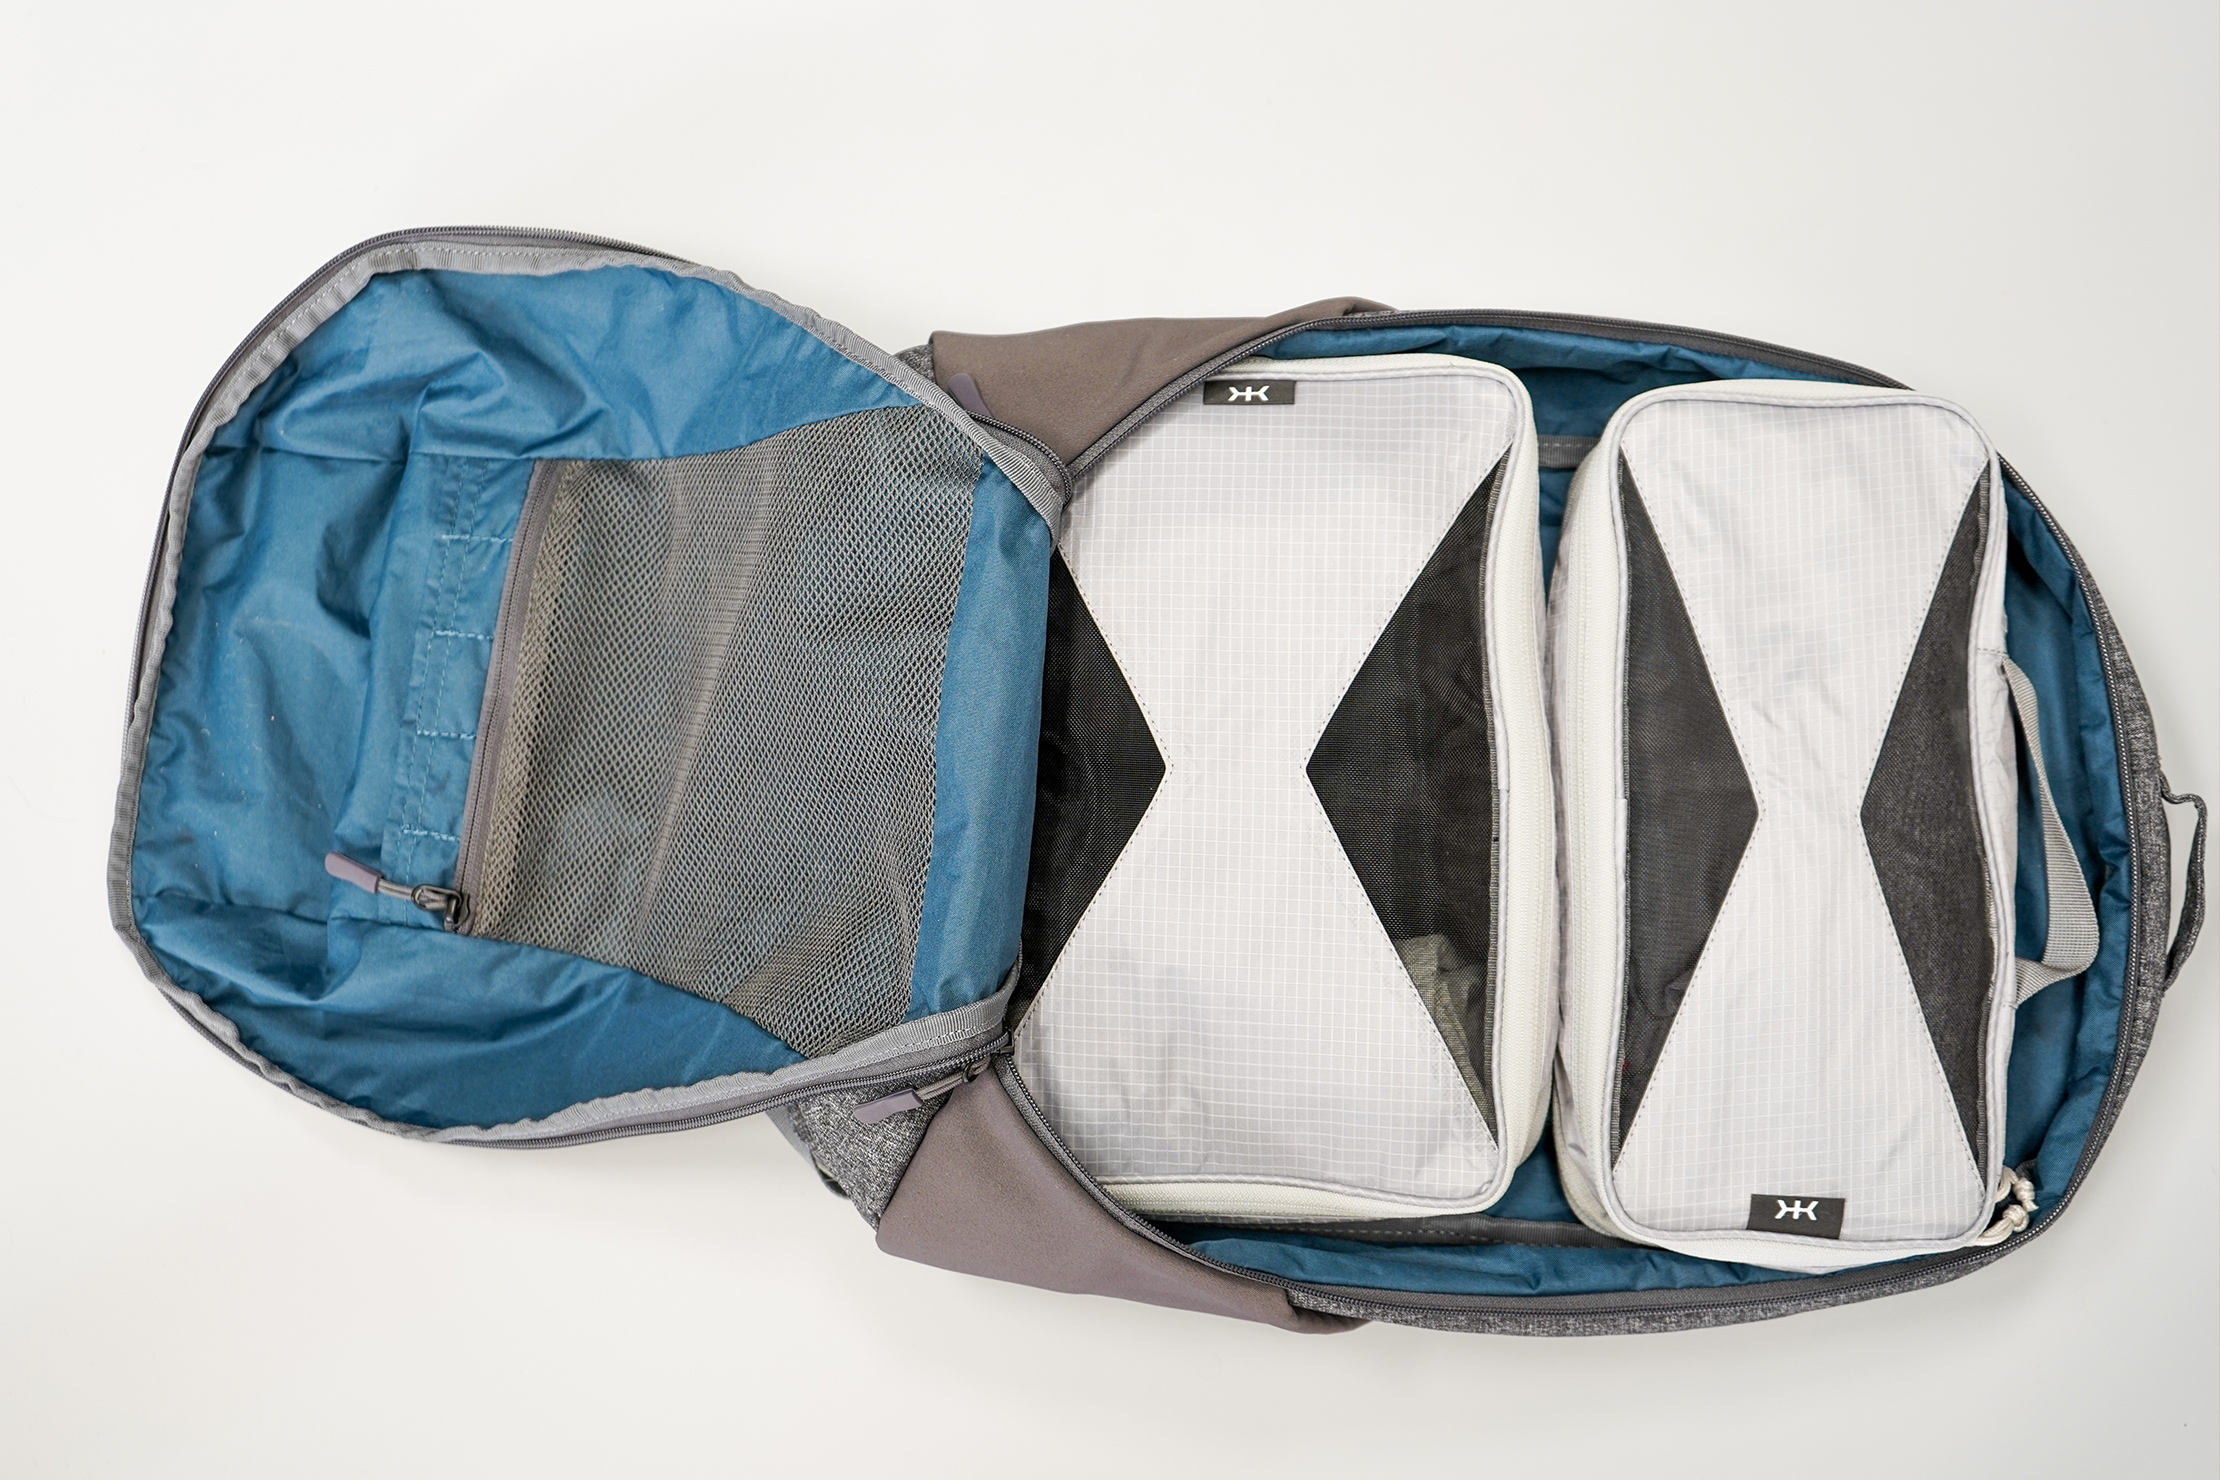 Arcido Vaga Main Compartment With Packing Cubes